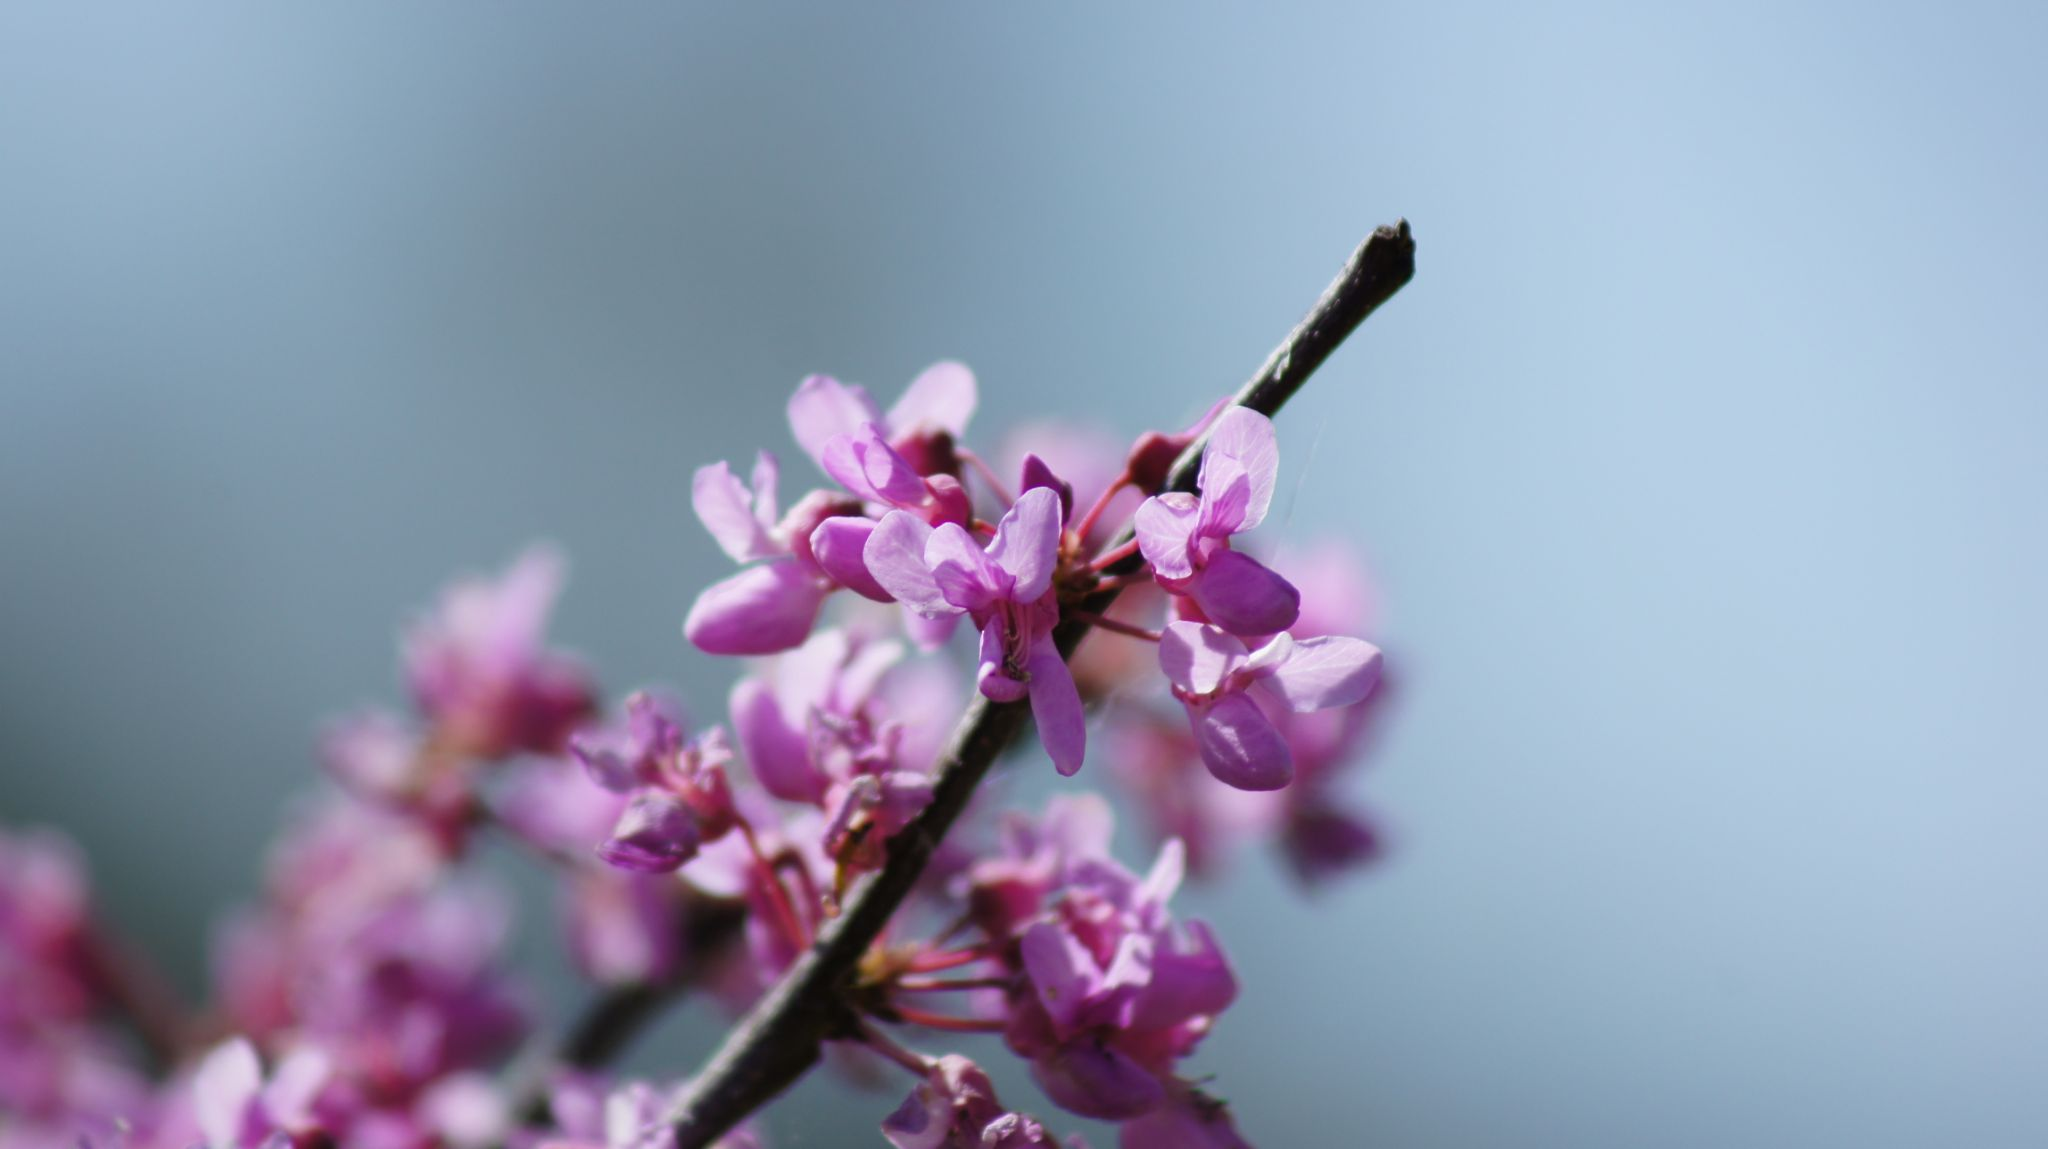 Flower by AudaxPhotography